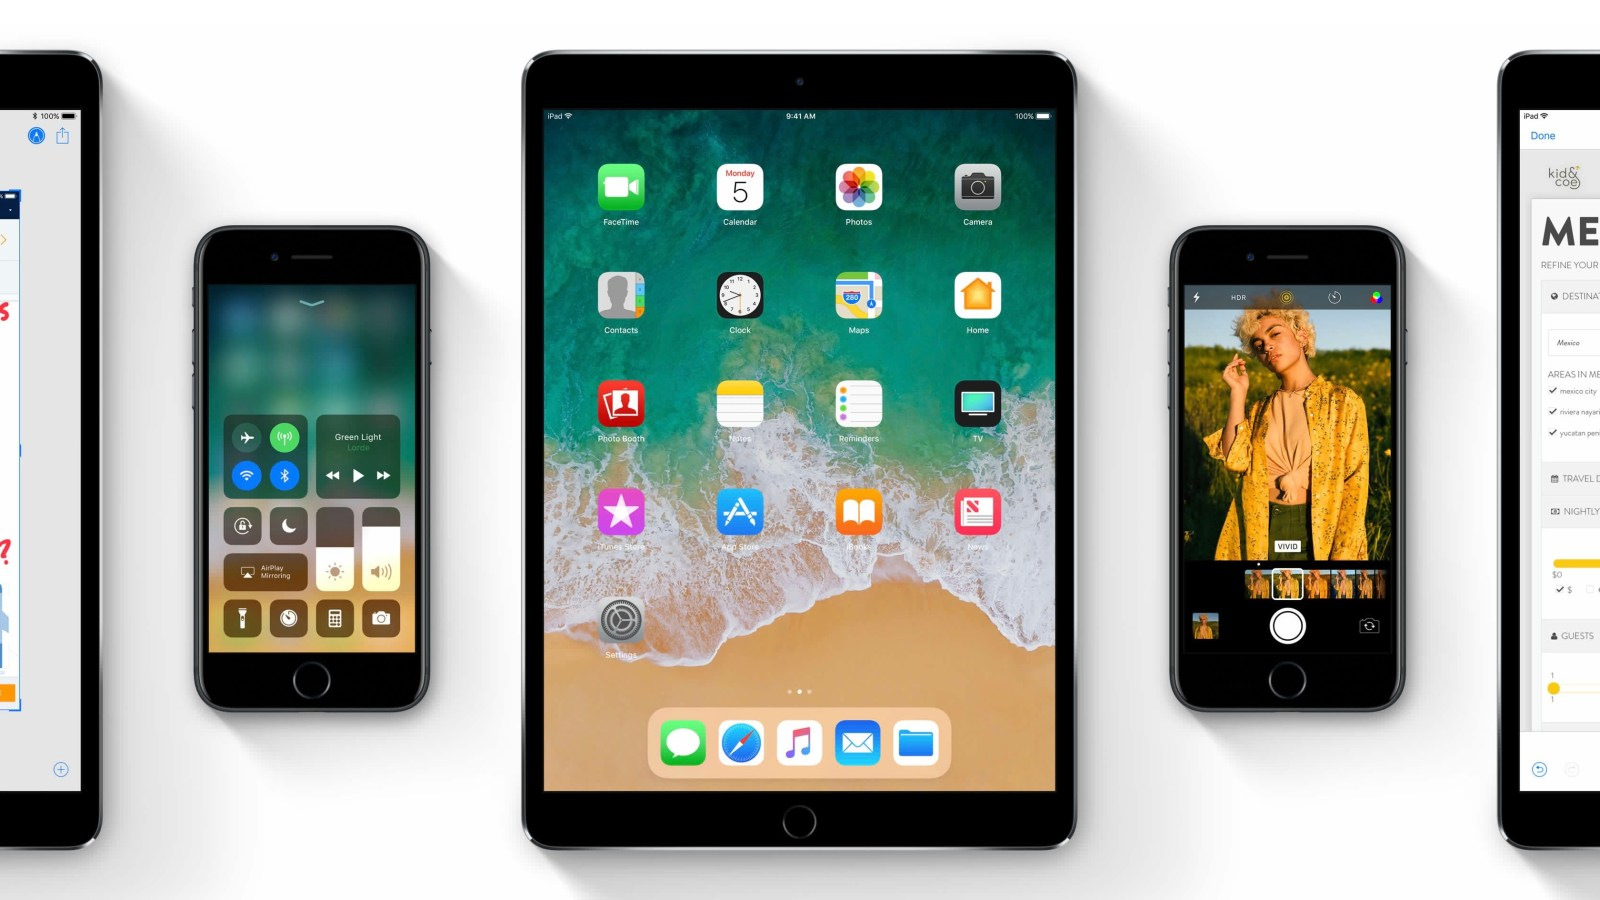 iOS 11 public beta is coming this week, here's how to prepare